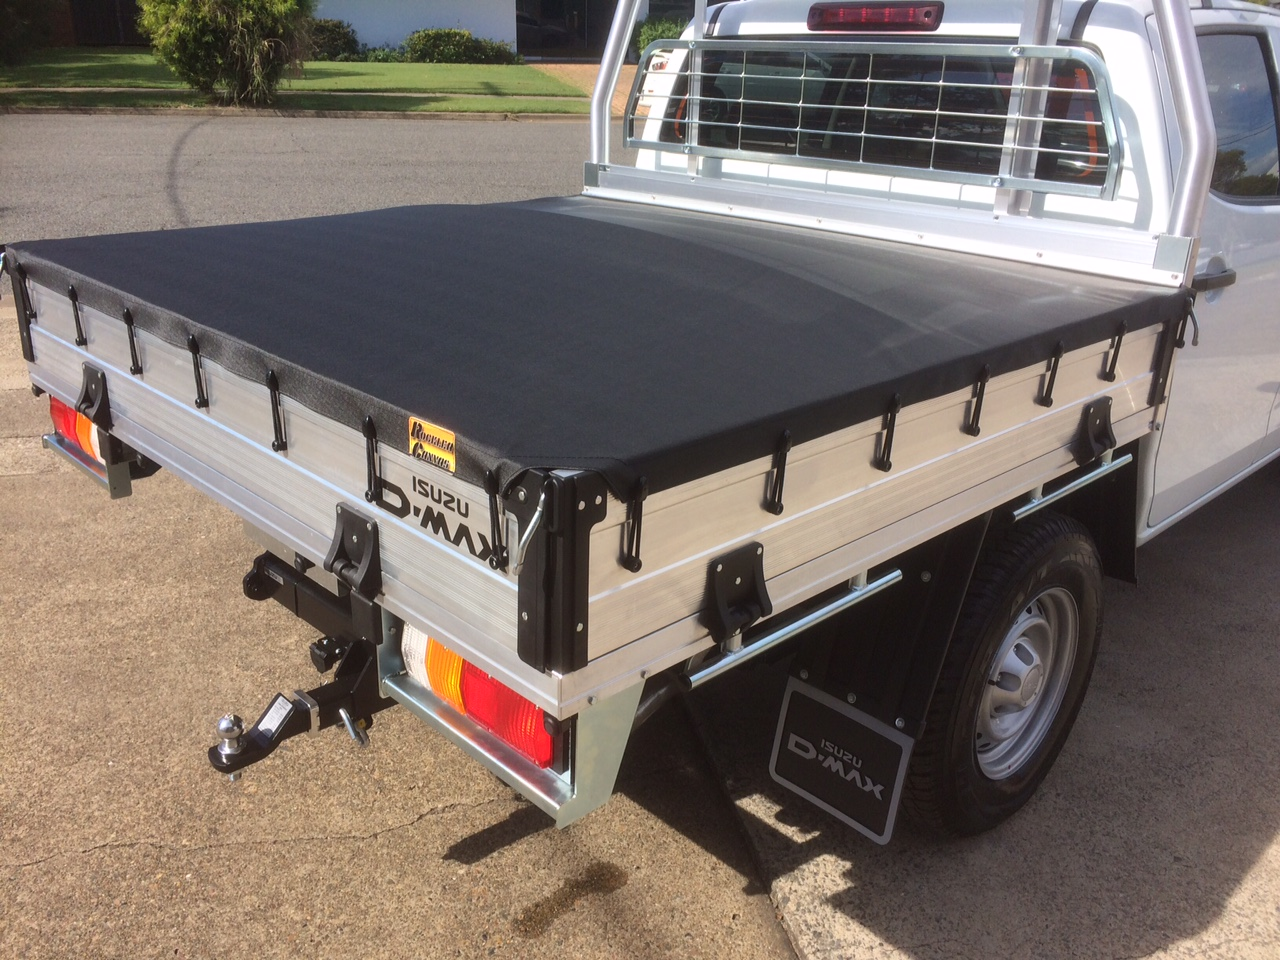 Trailer canopy